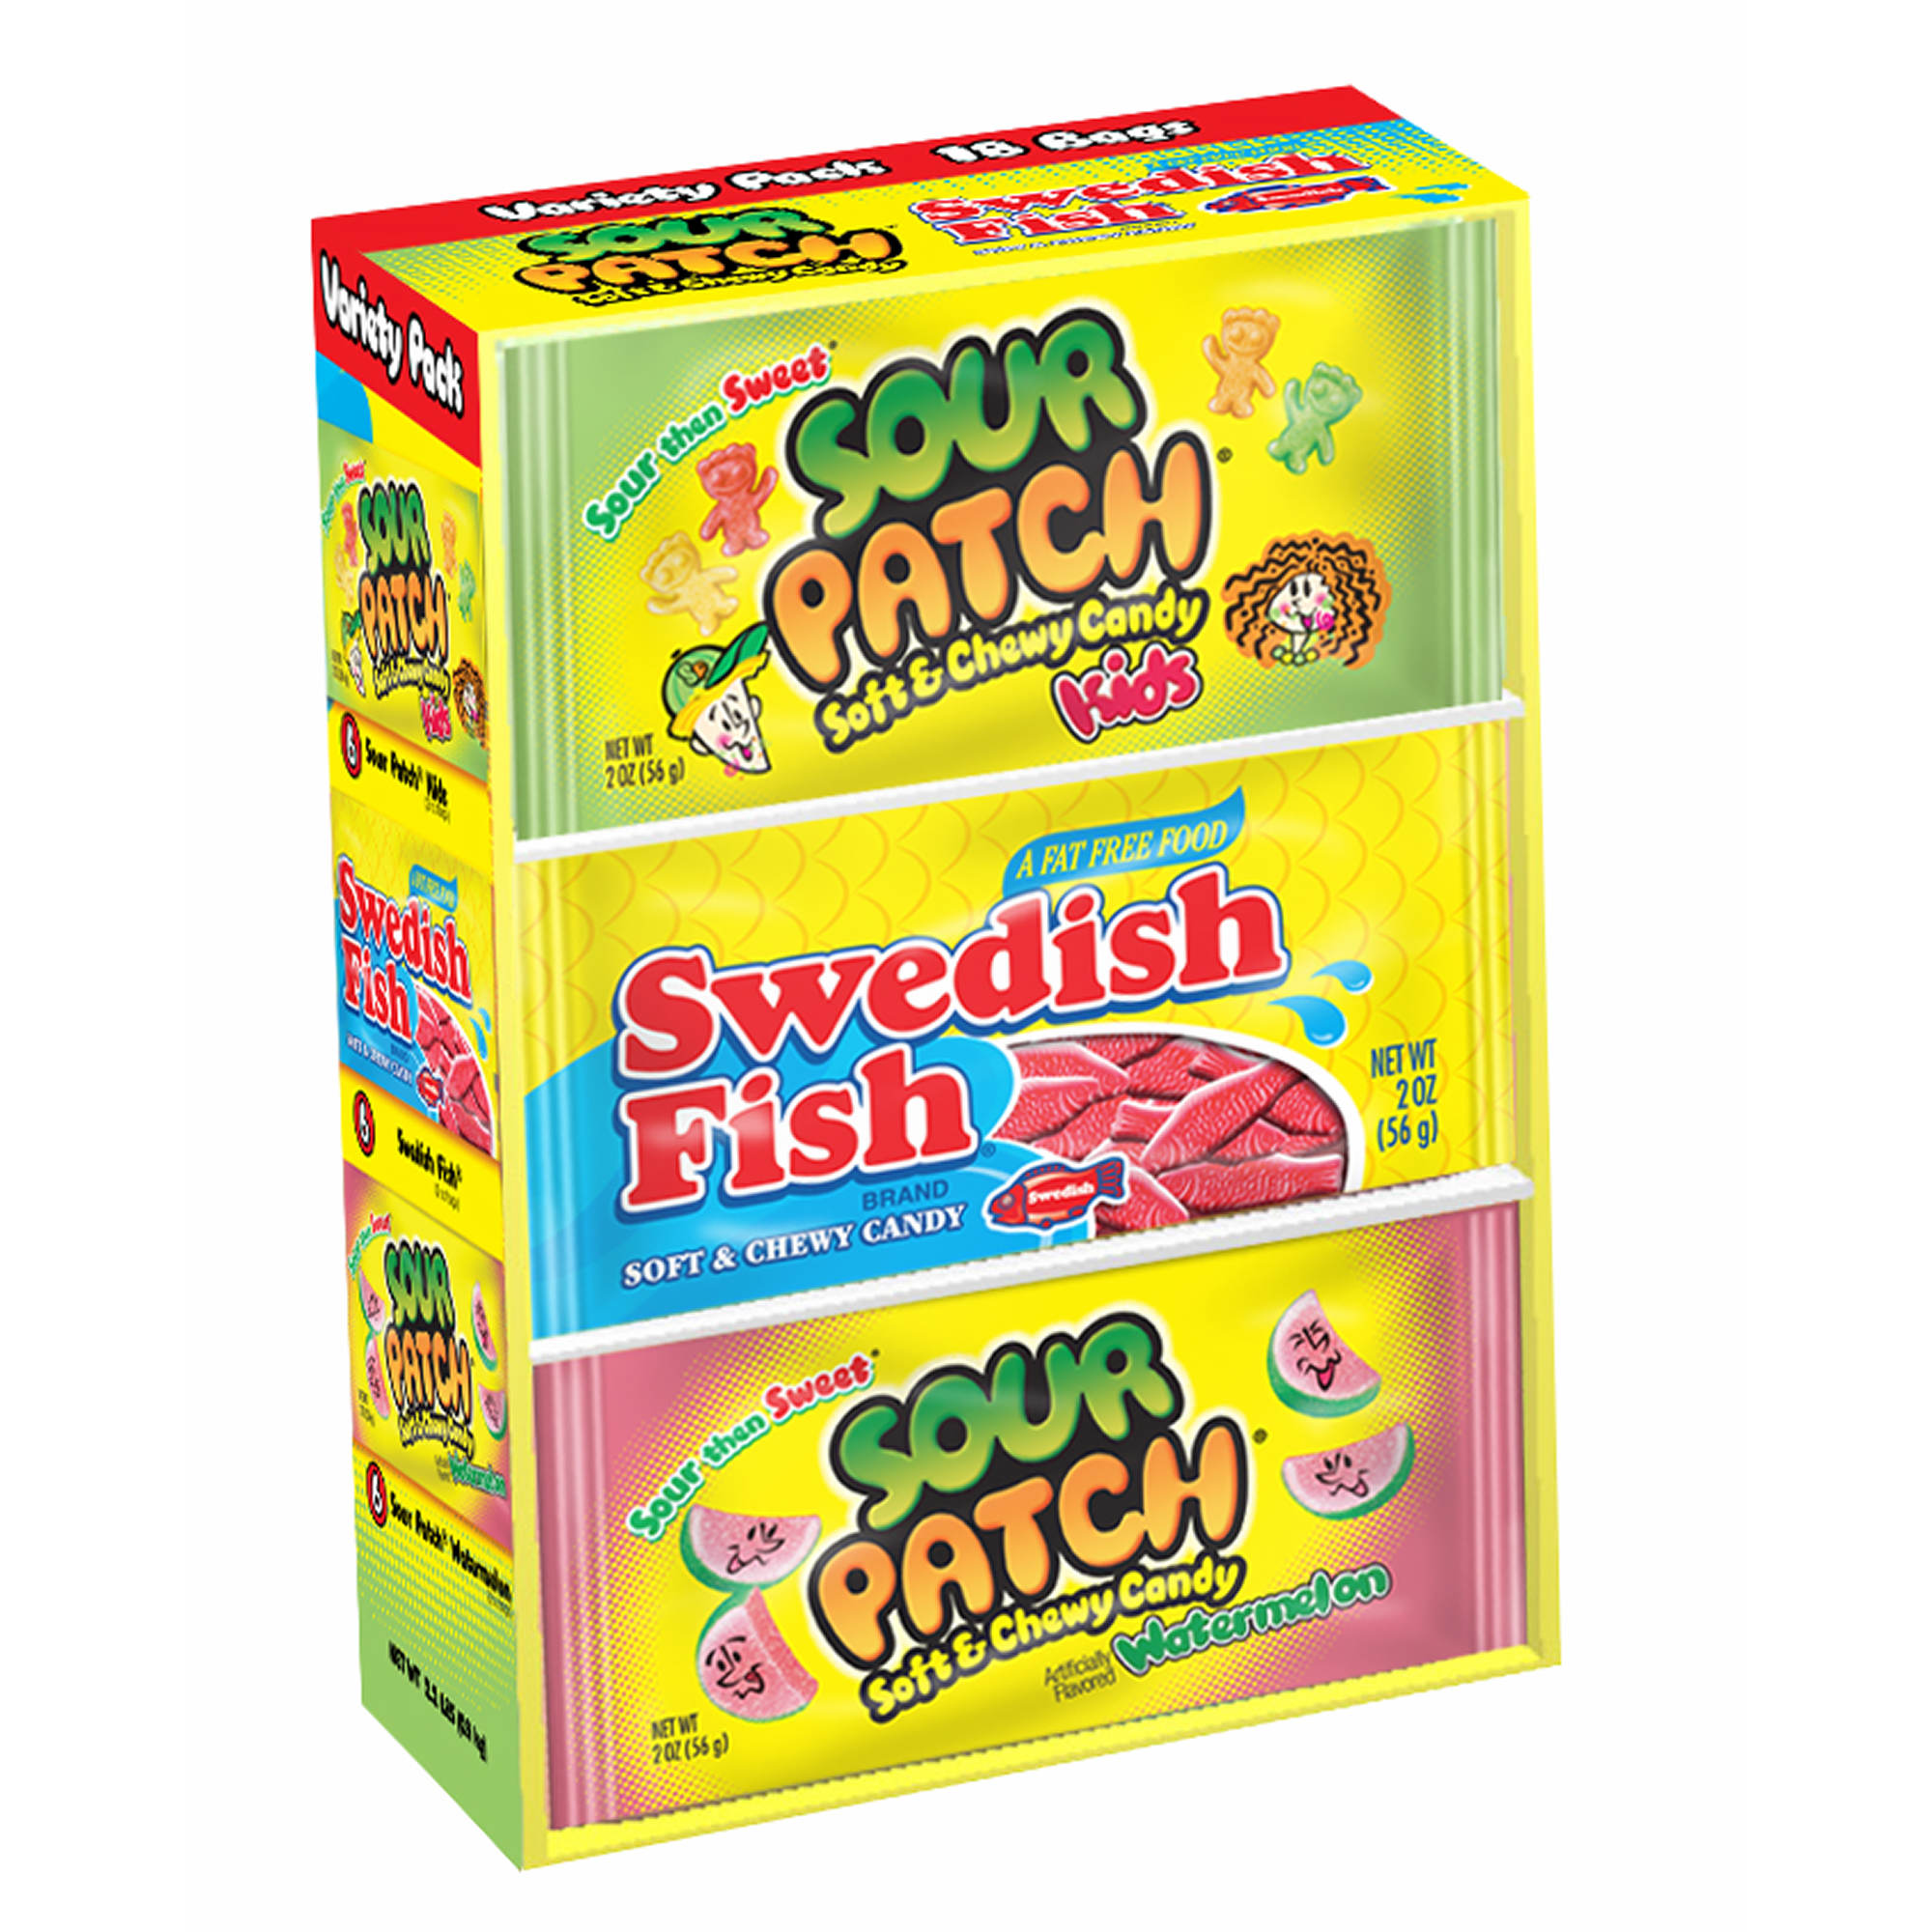 Swedish fish and sour patch variety pack 2 oz 18 pk for Sour swedish fish